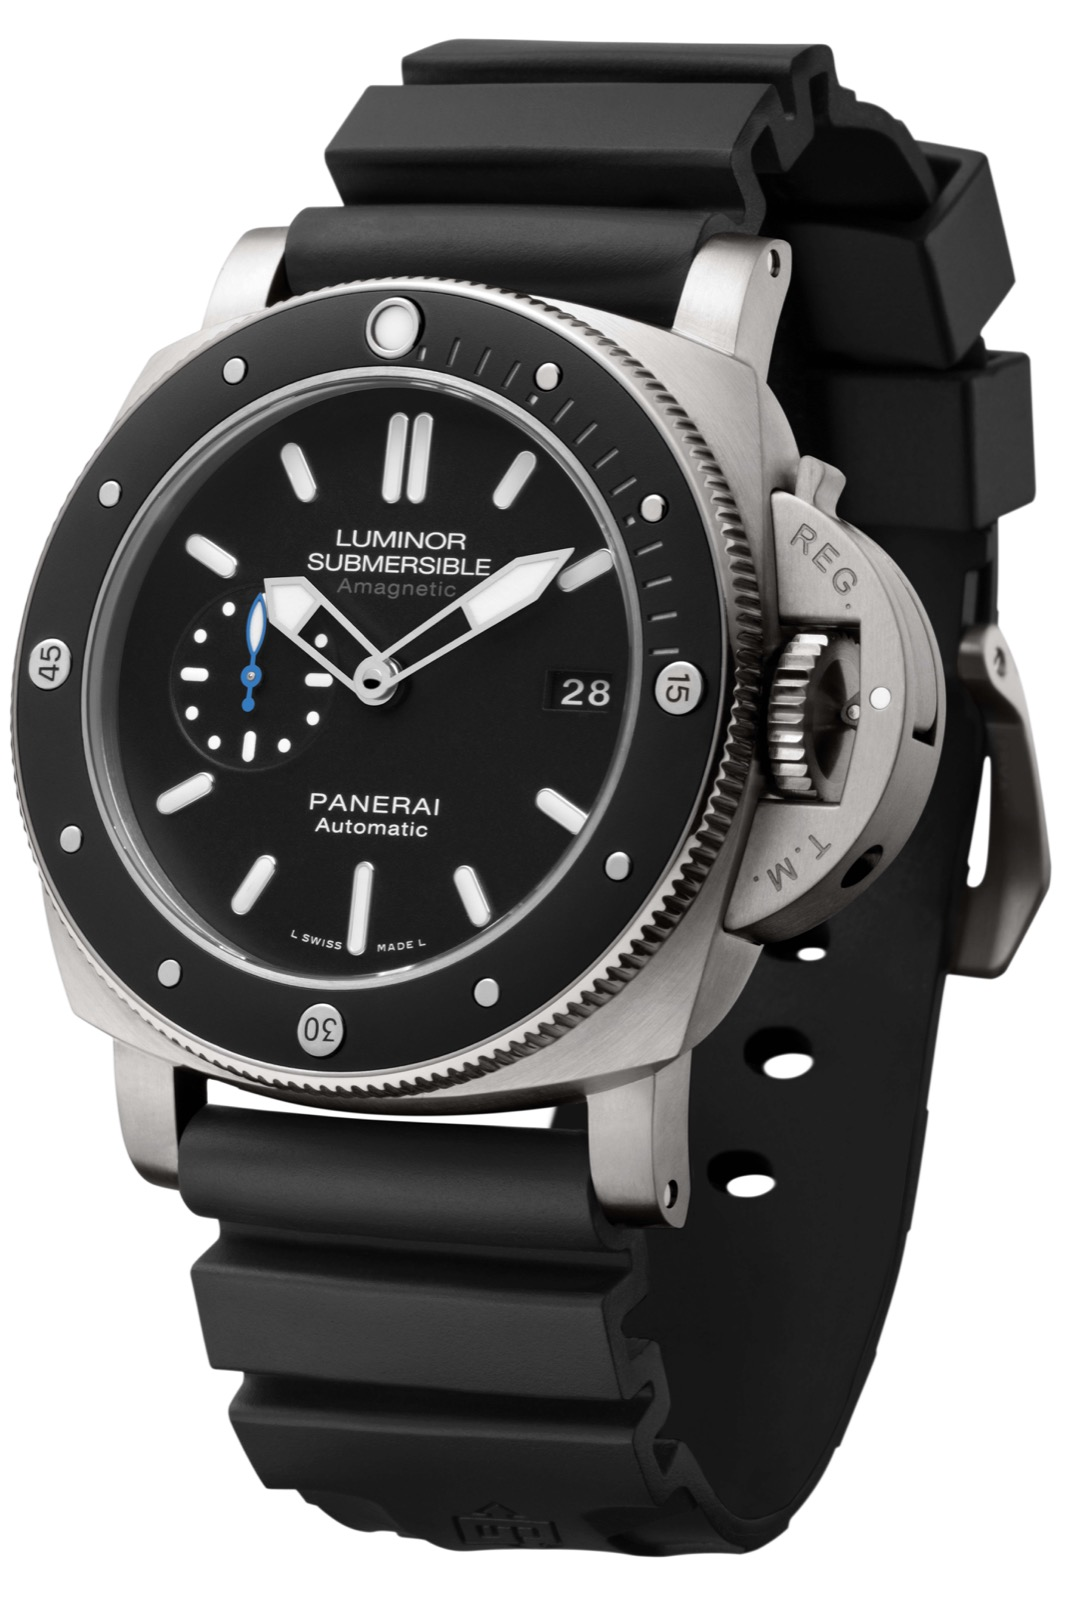 PANERAI LUMINOR SUBMERSIBLE 1950 AMAGNETIC 3 DAYS AUTOMATIC TITANIO (PAM1389) - 47mm